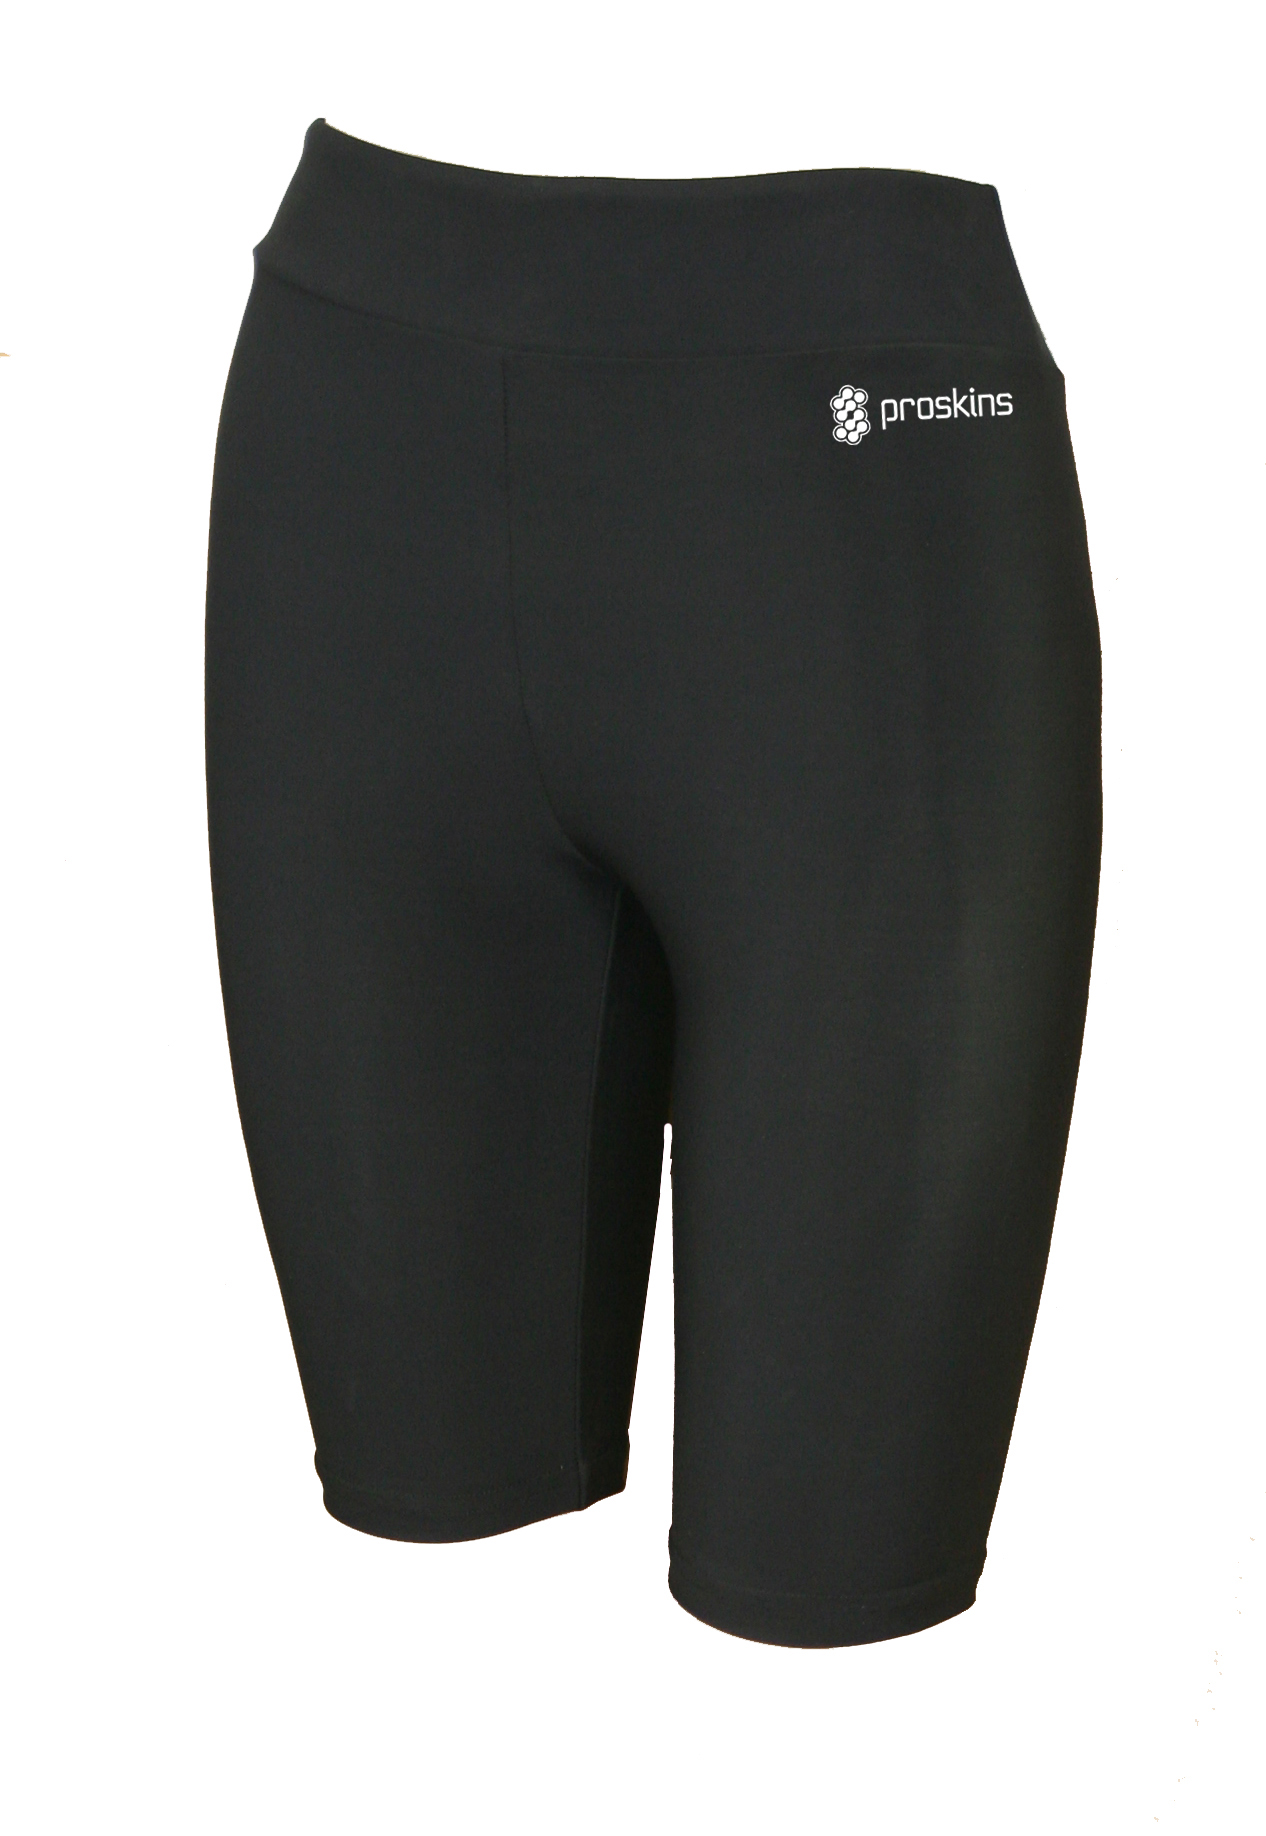 Proskins Slimming Slim Cycle (Knee Length) Shorts